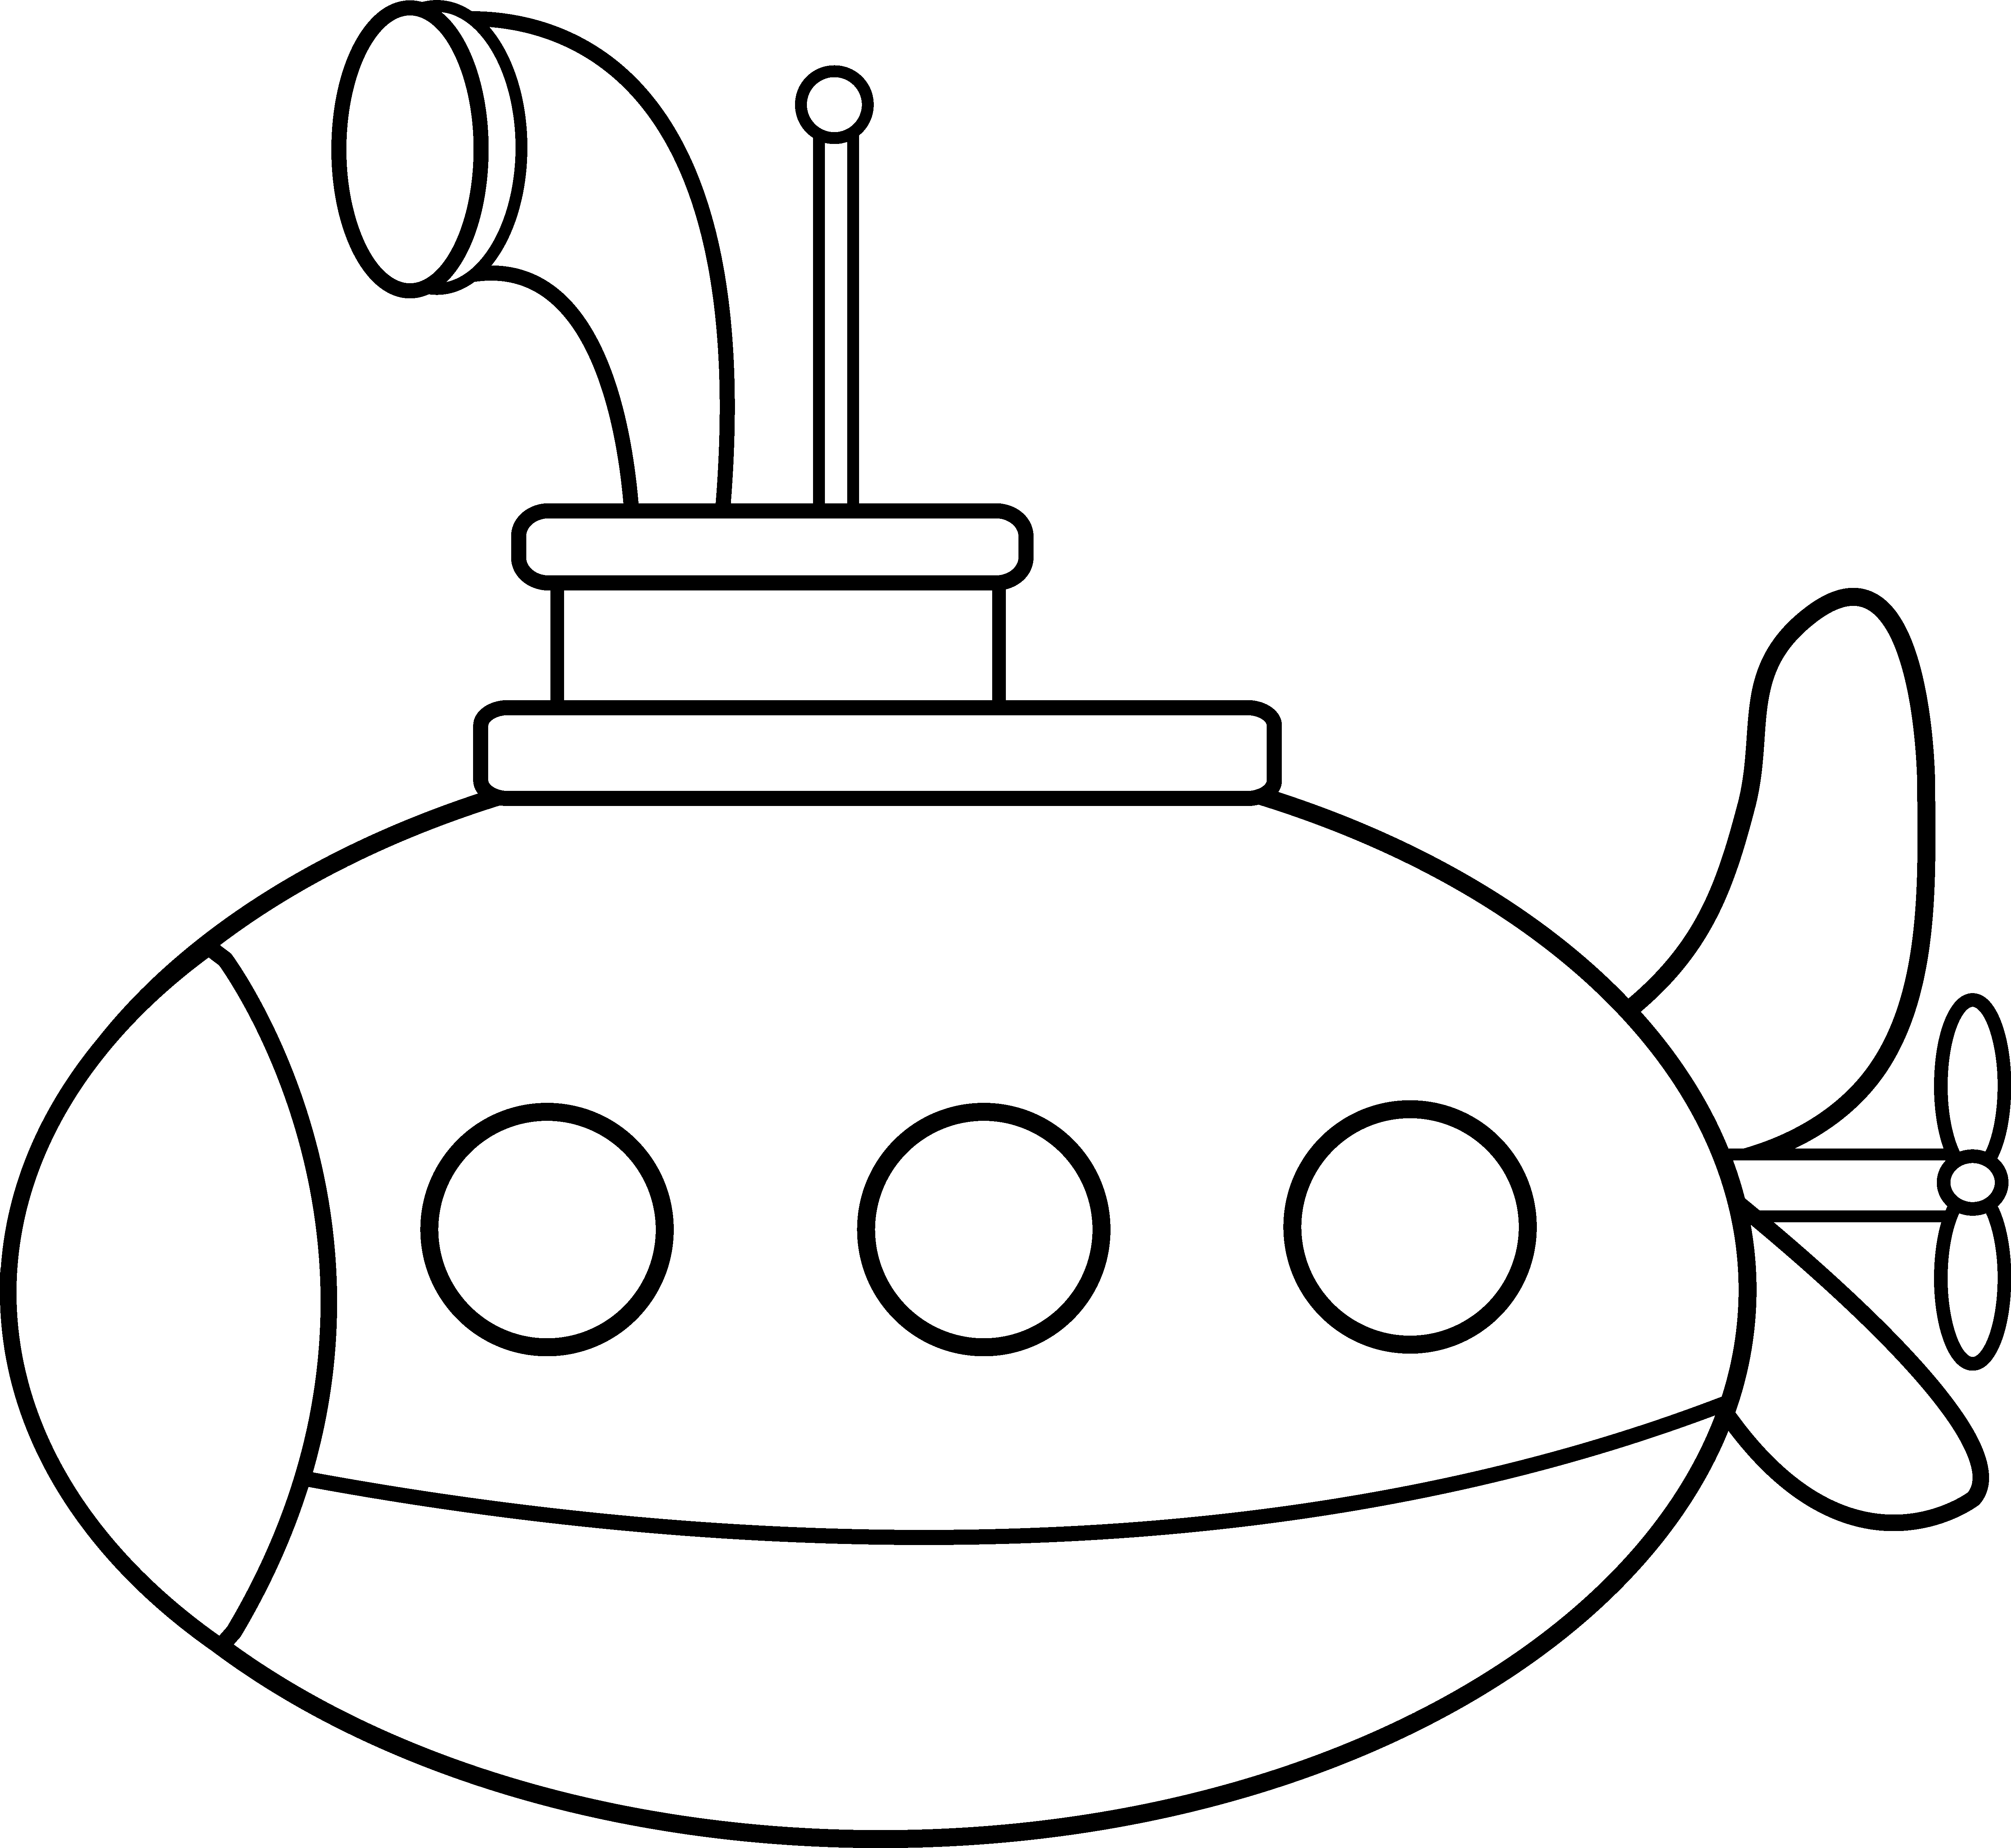 Black submarine. Images for clipart and